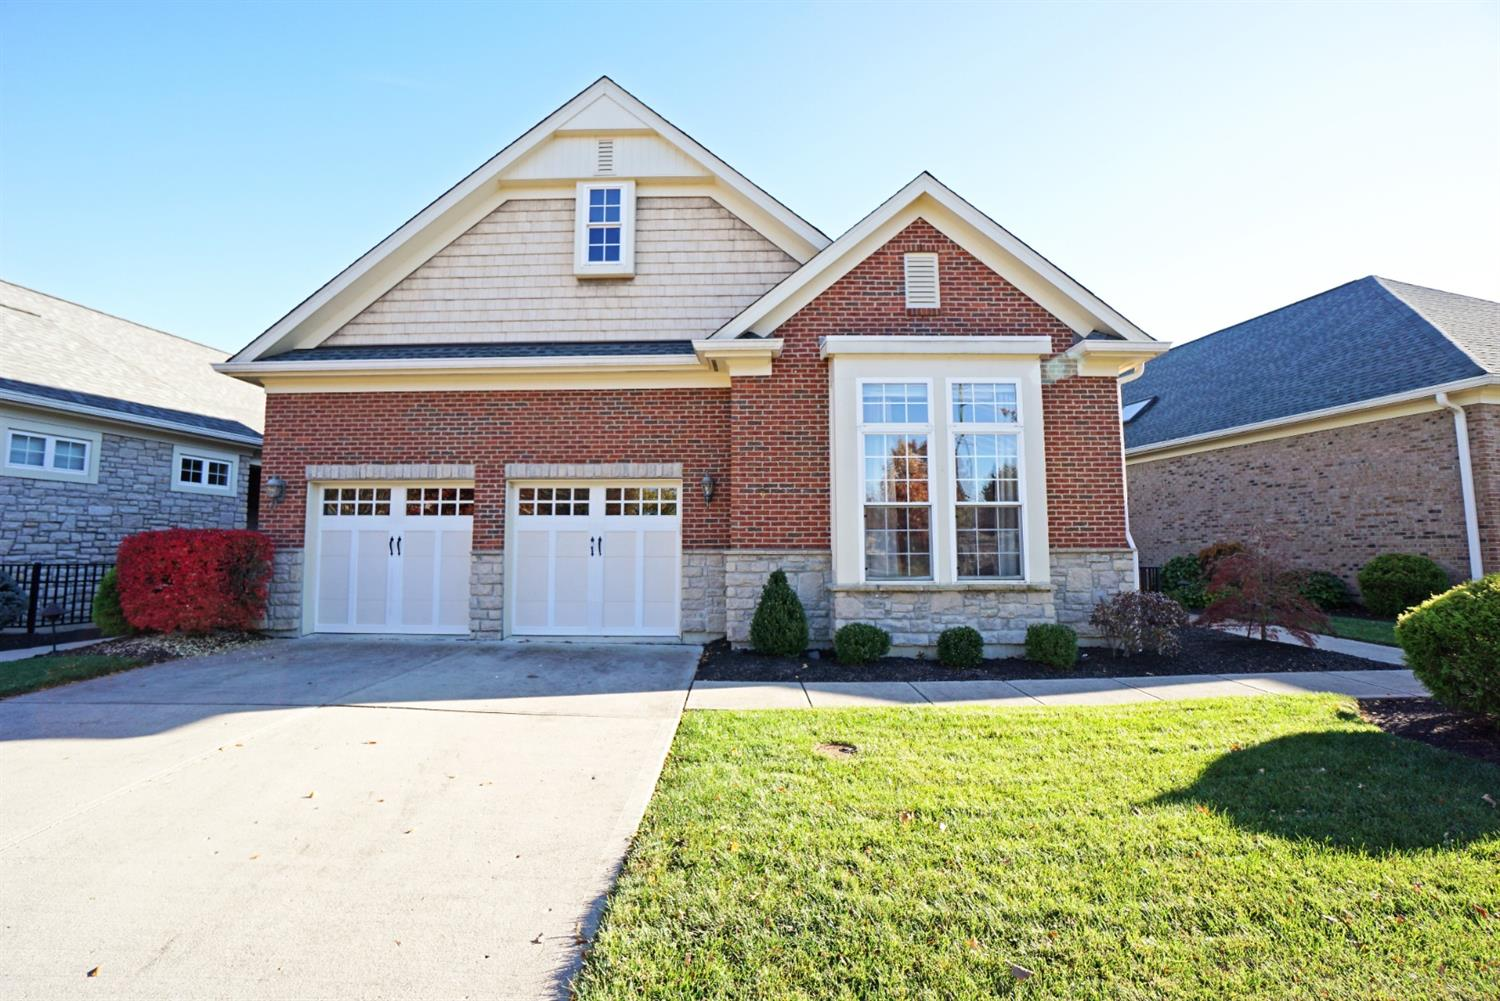 Photo of 7164 Harbour Town Drive, West Chester, OH 45069